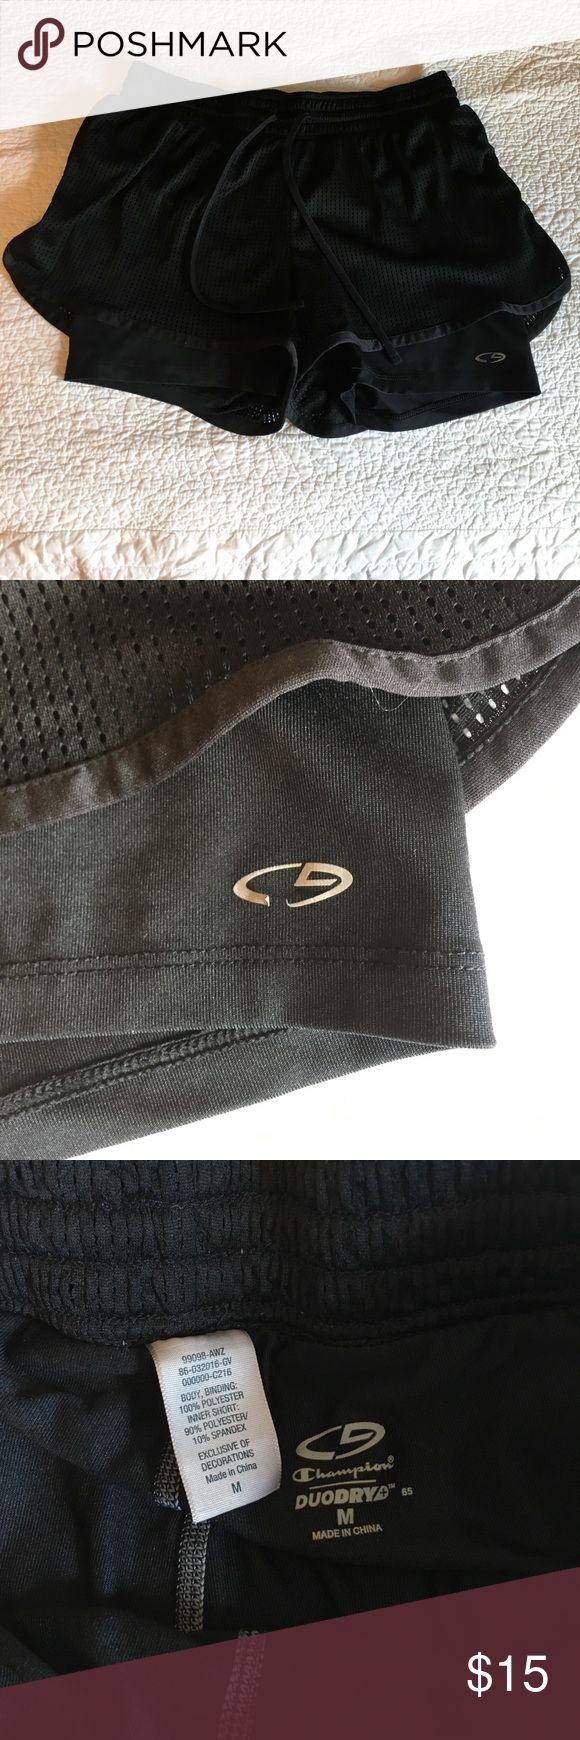 Champion duo dry shorts size m Black on black champion duo dry workout shorts with spandex under layer. Size medium. Wore once for maybe an hour and discovered my attempt at being a shorts wearing girl was pointless. Washed and line dried but the emblem started to peel already. Other than that, they are practically new without tags. Champion Shorts